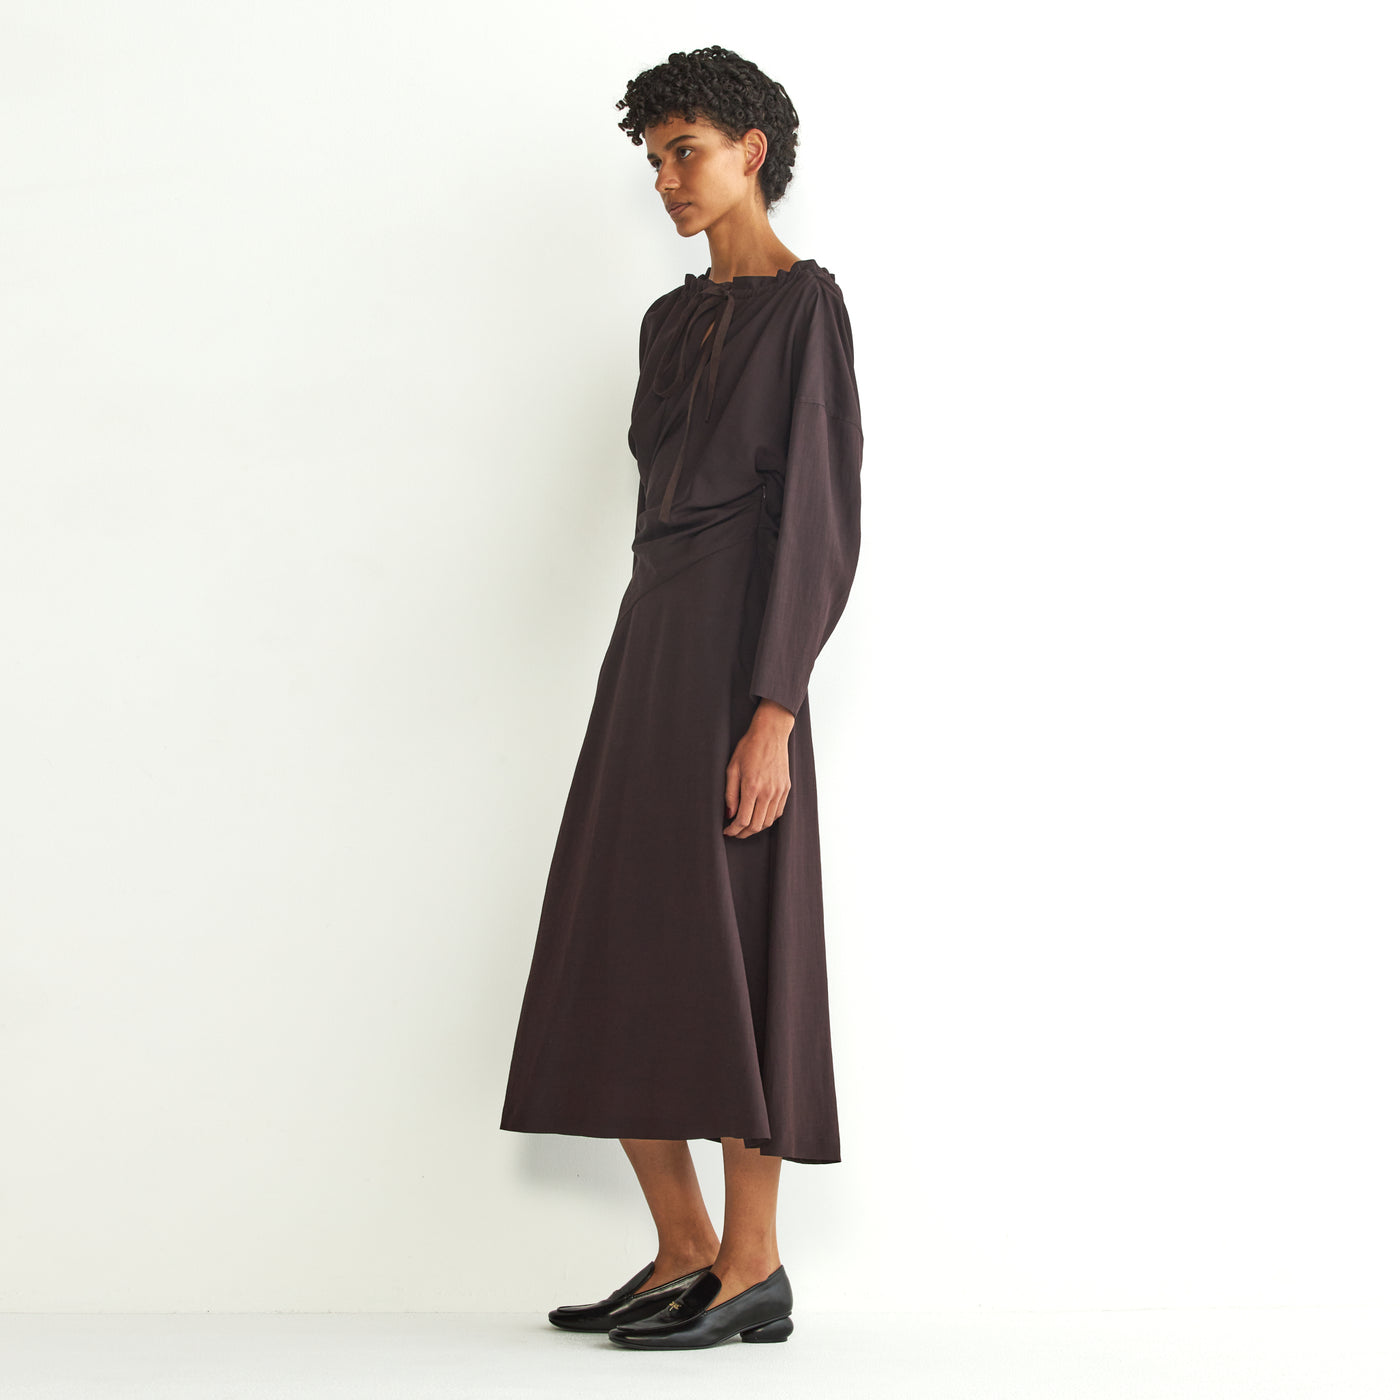 Jiline twist dress BR